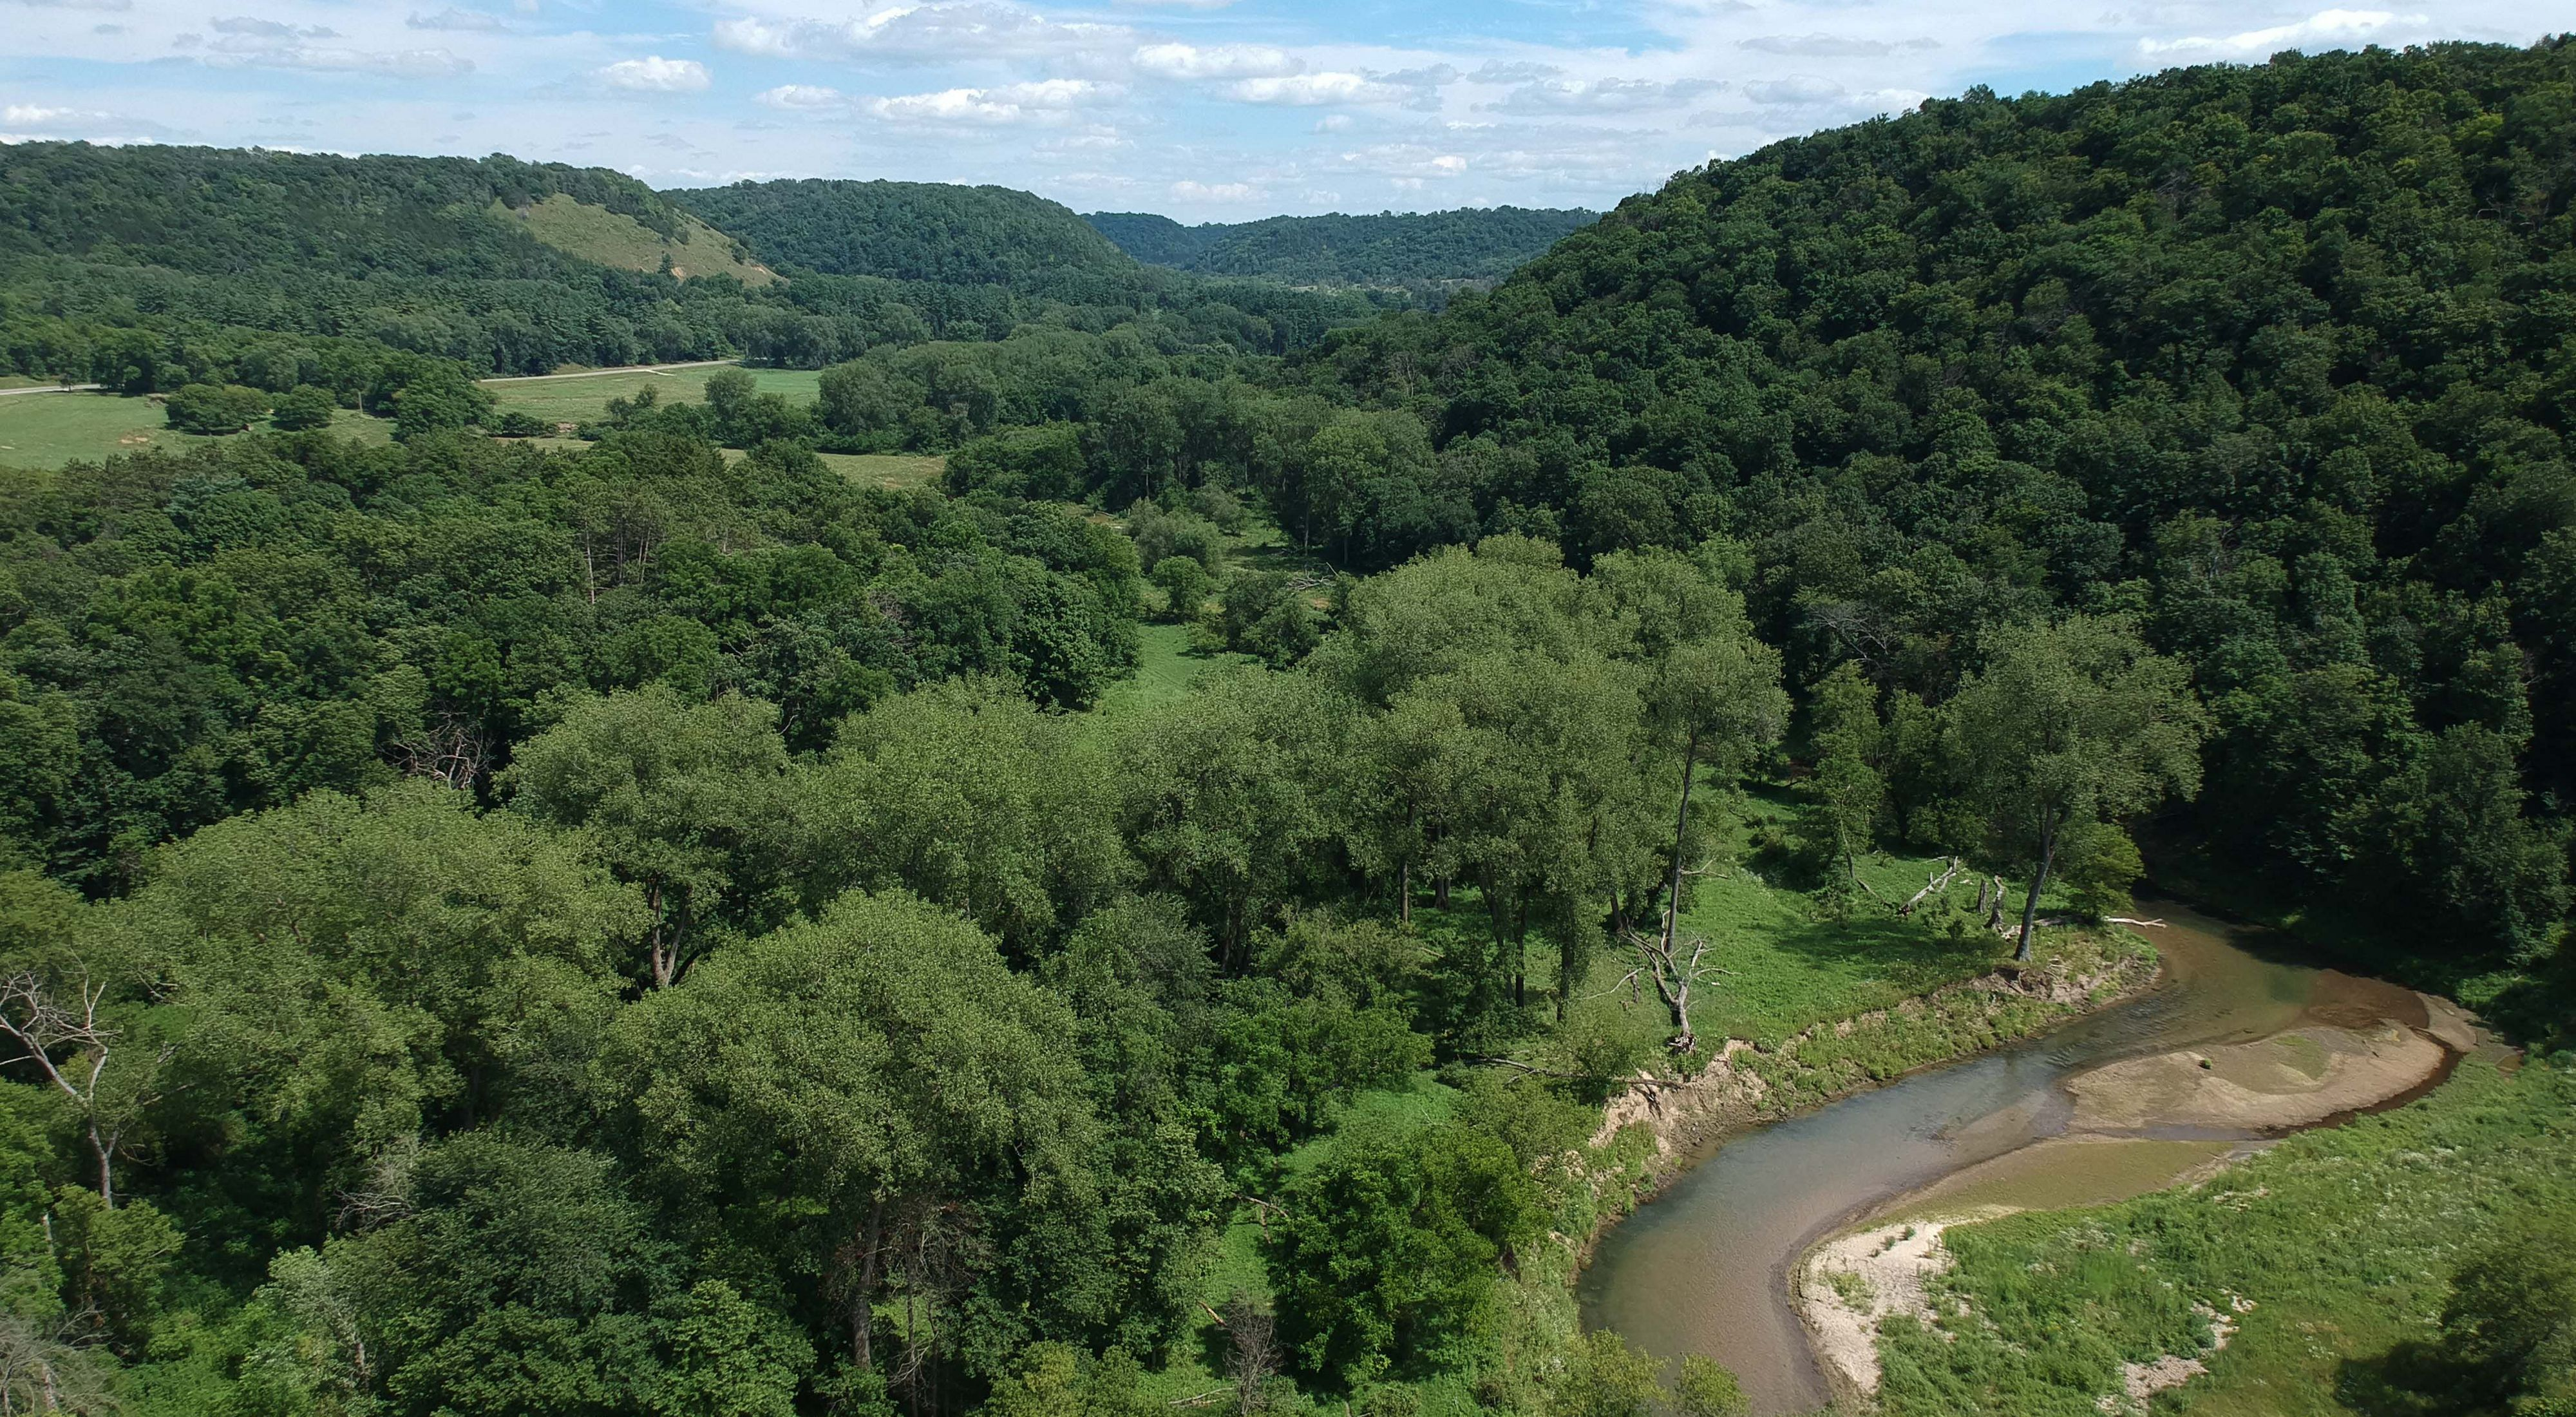 River winding through a forest with patches of open grassland in Minnesota's driftless area.